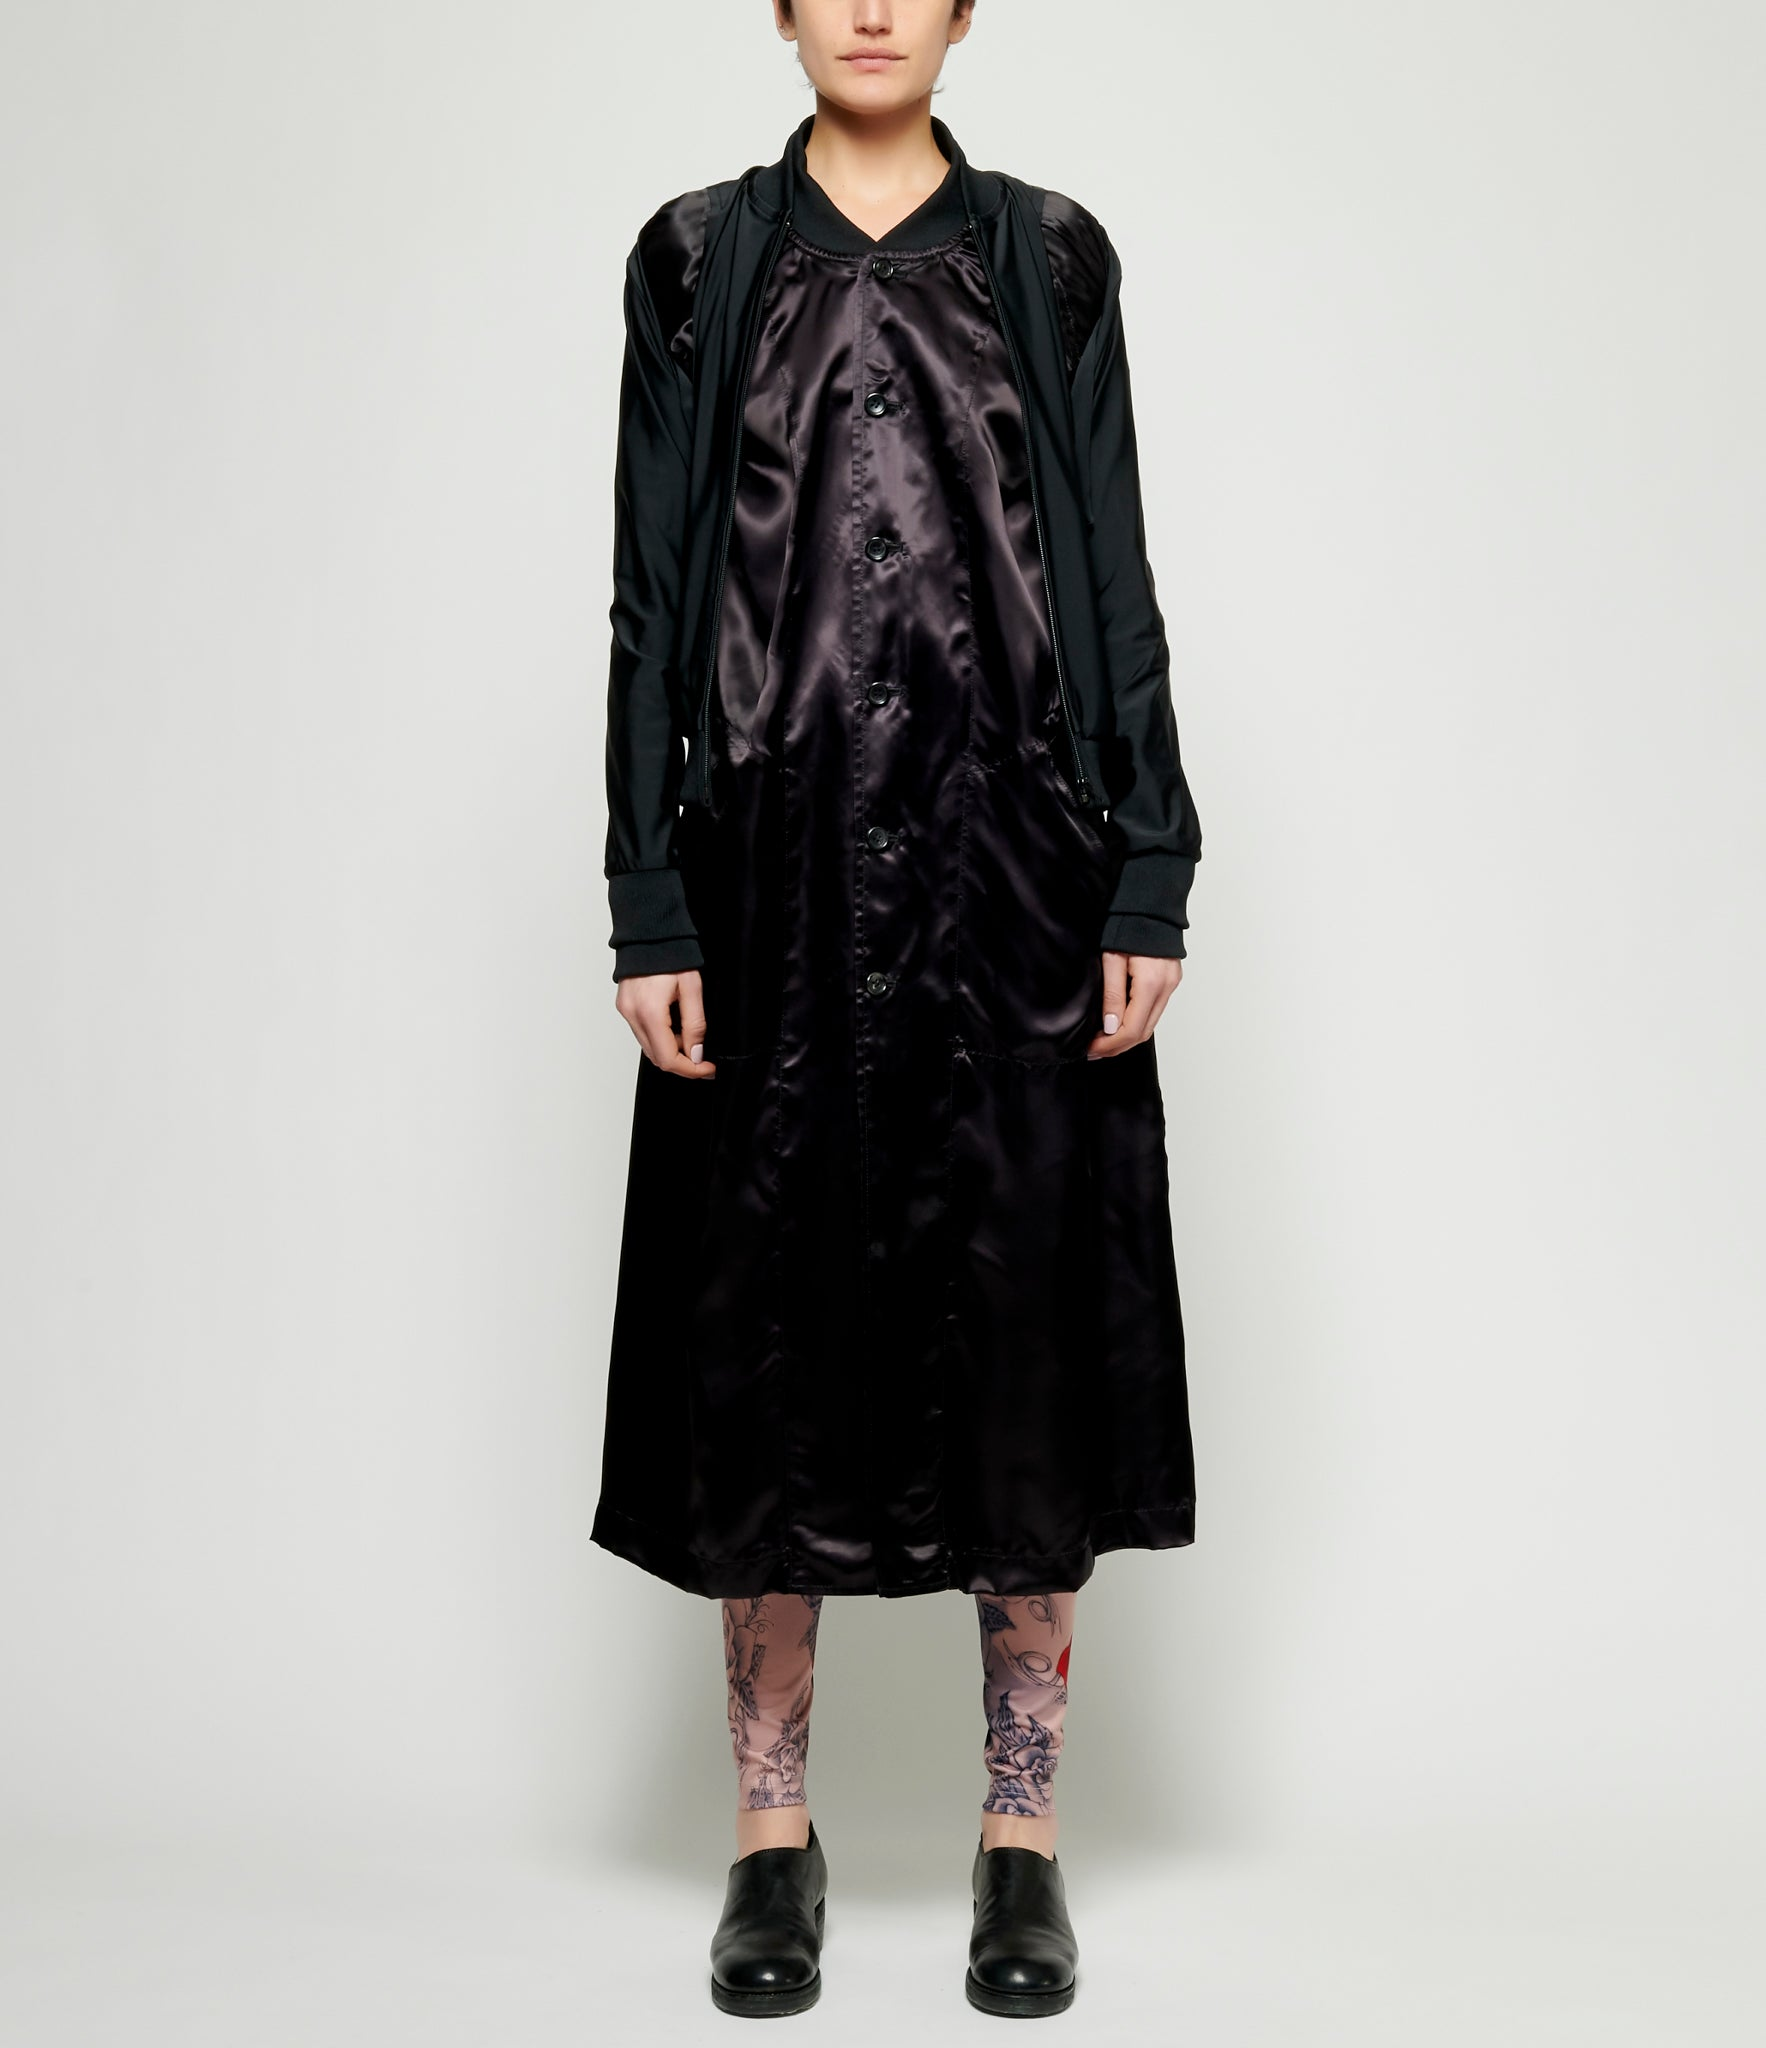 Comme Des Garcons Cupro Satin 4 Sleeve Layered Bomber Jacket Dress